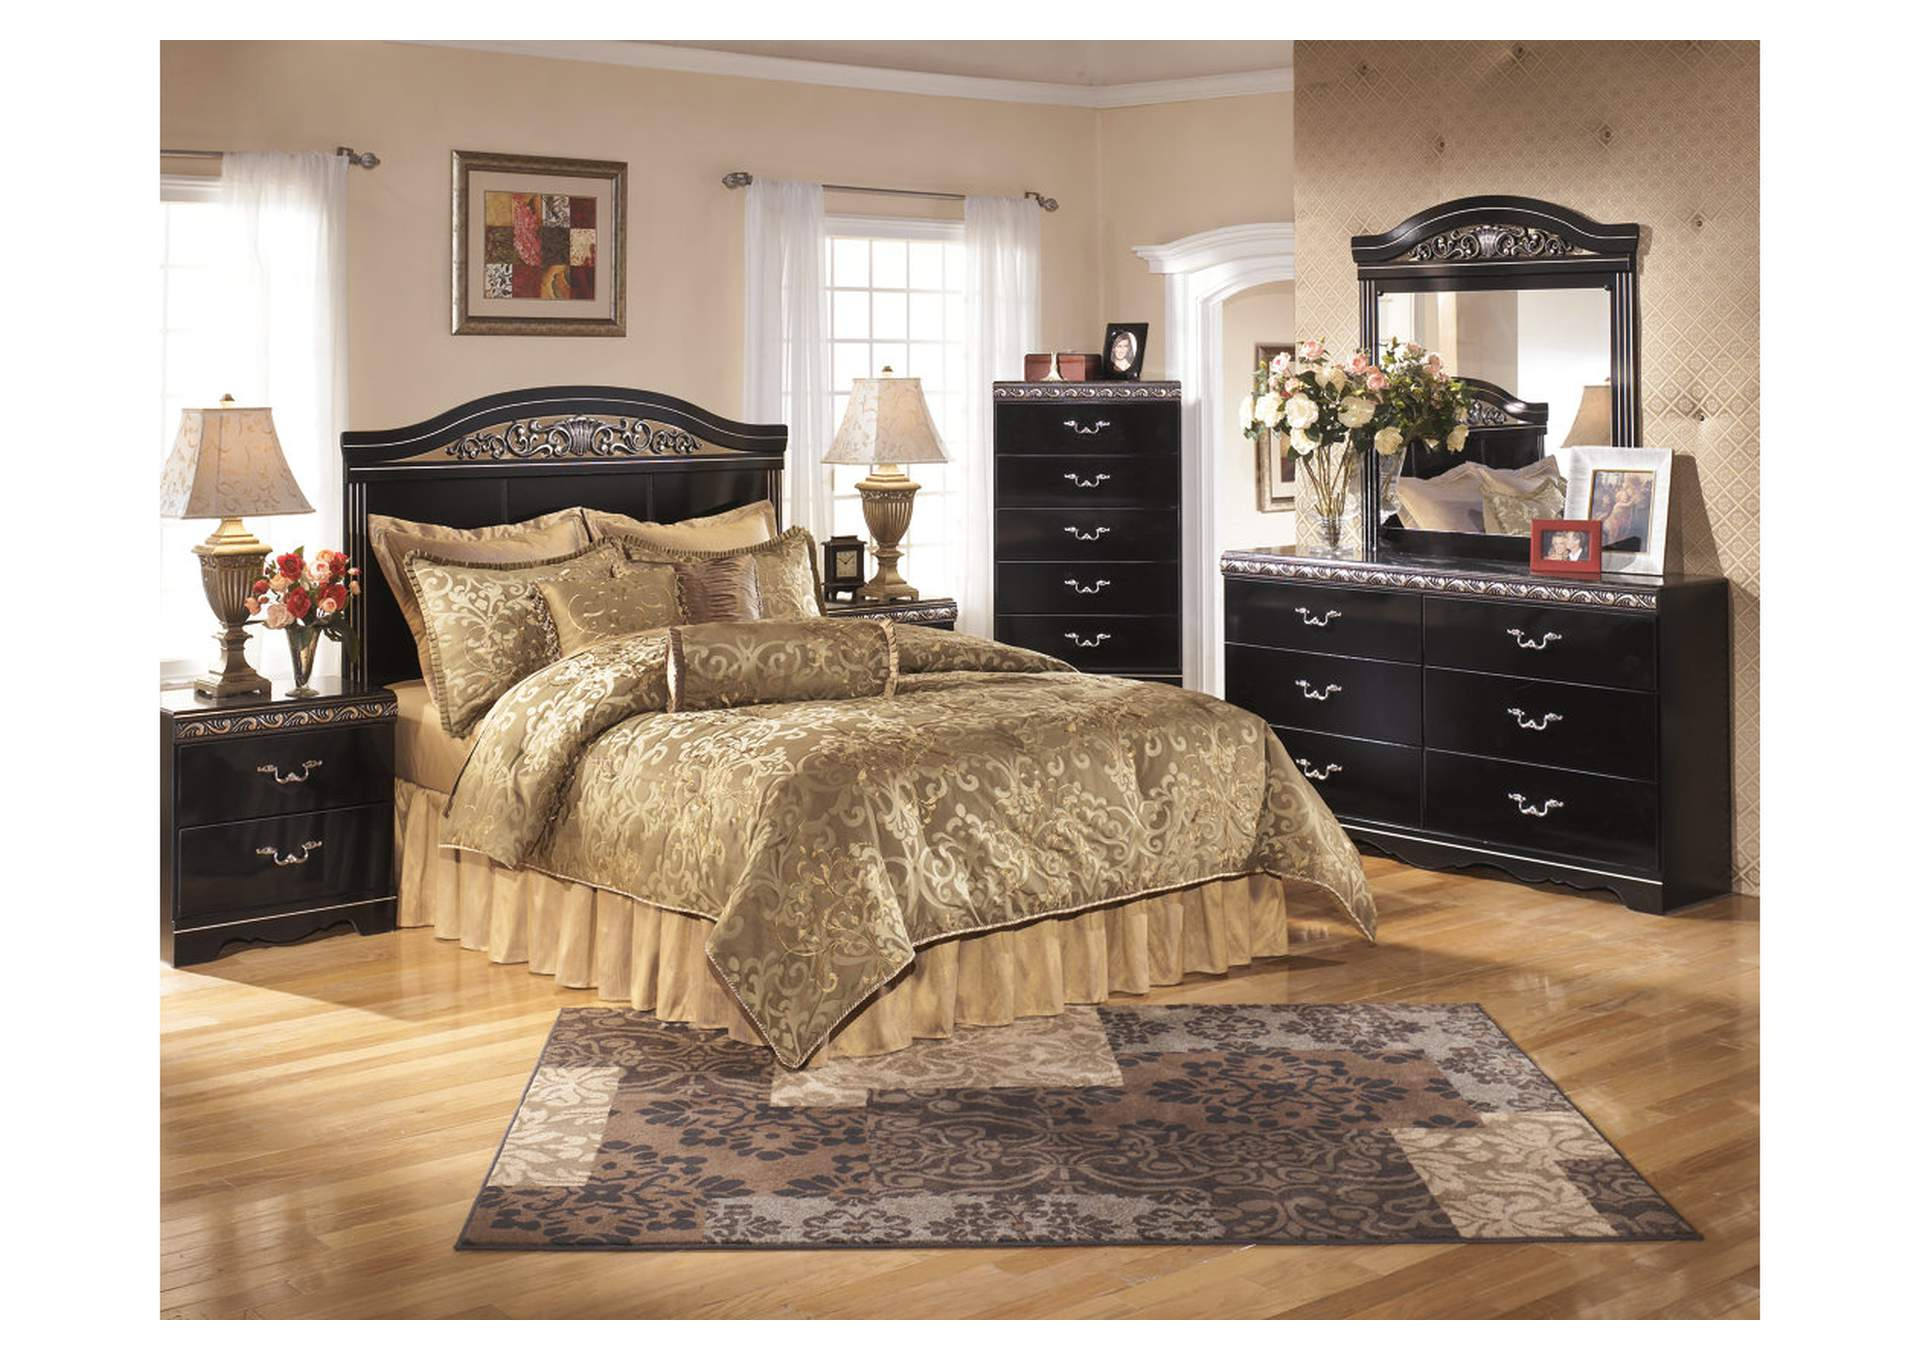 Constellations Queen/Full Panel Headboard w/Dresser, Mirror & Nightstand,Signature Design By Ashley